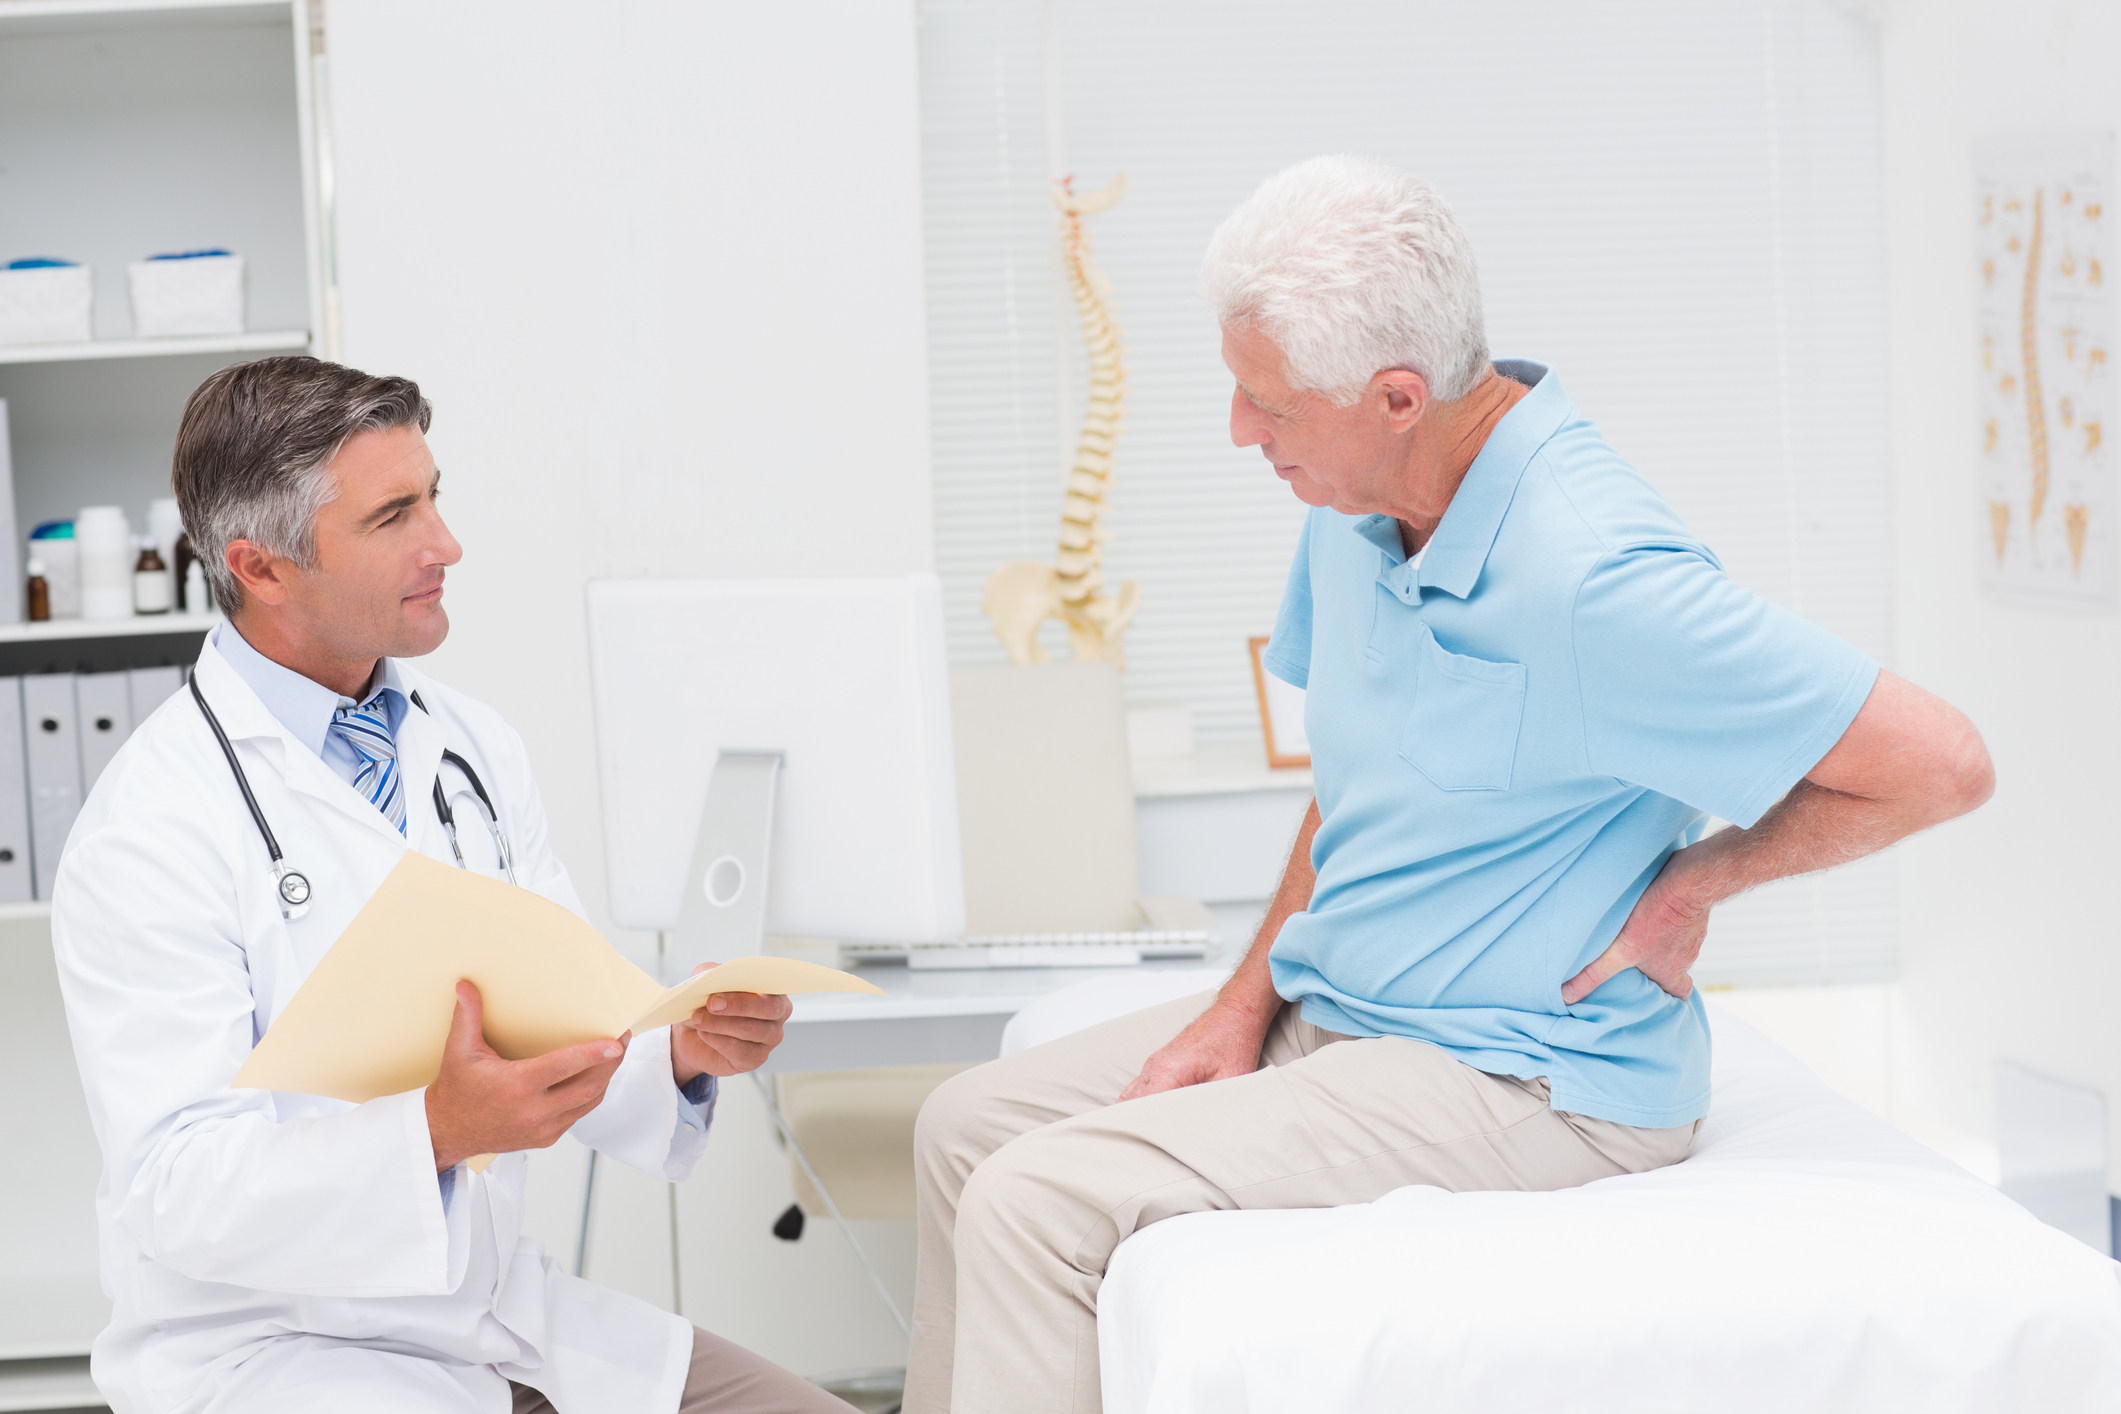 Opioids for back pain offer limited relief